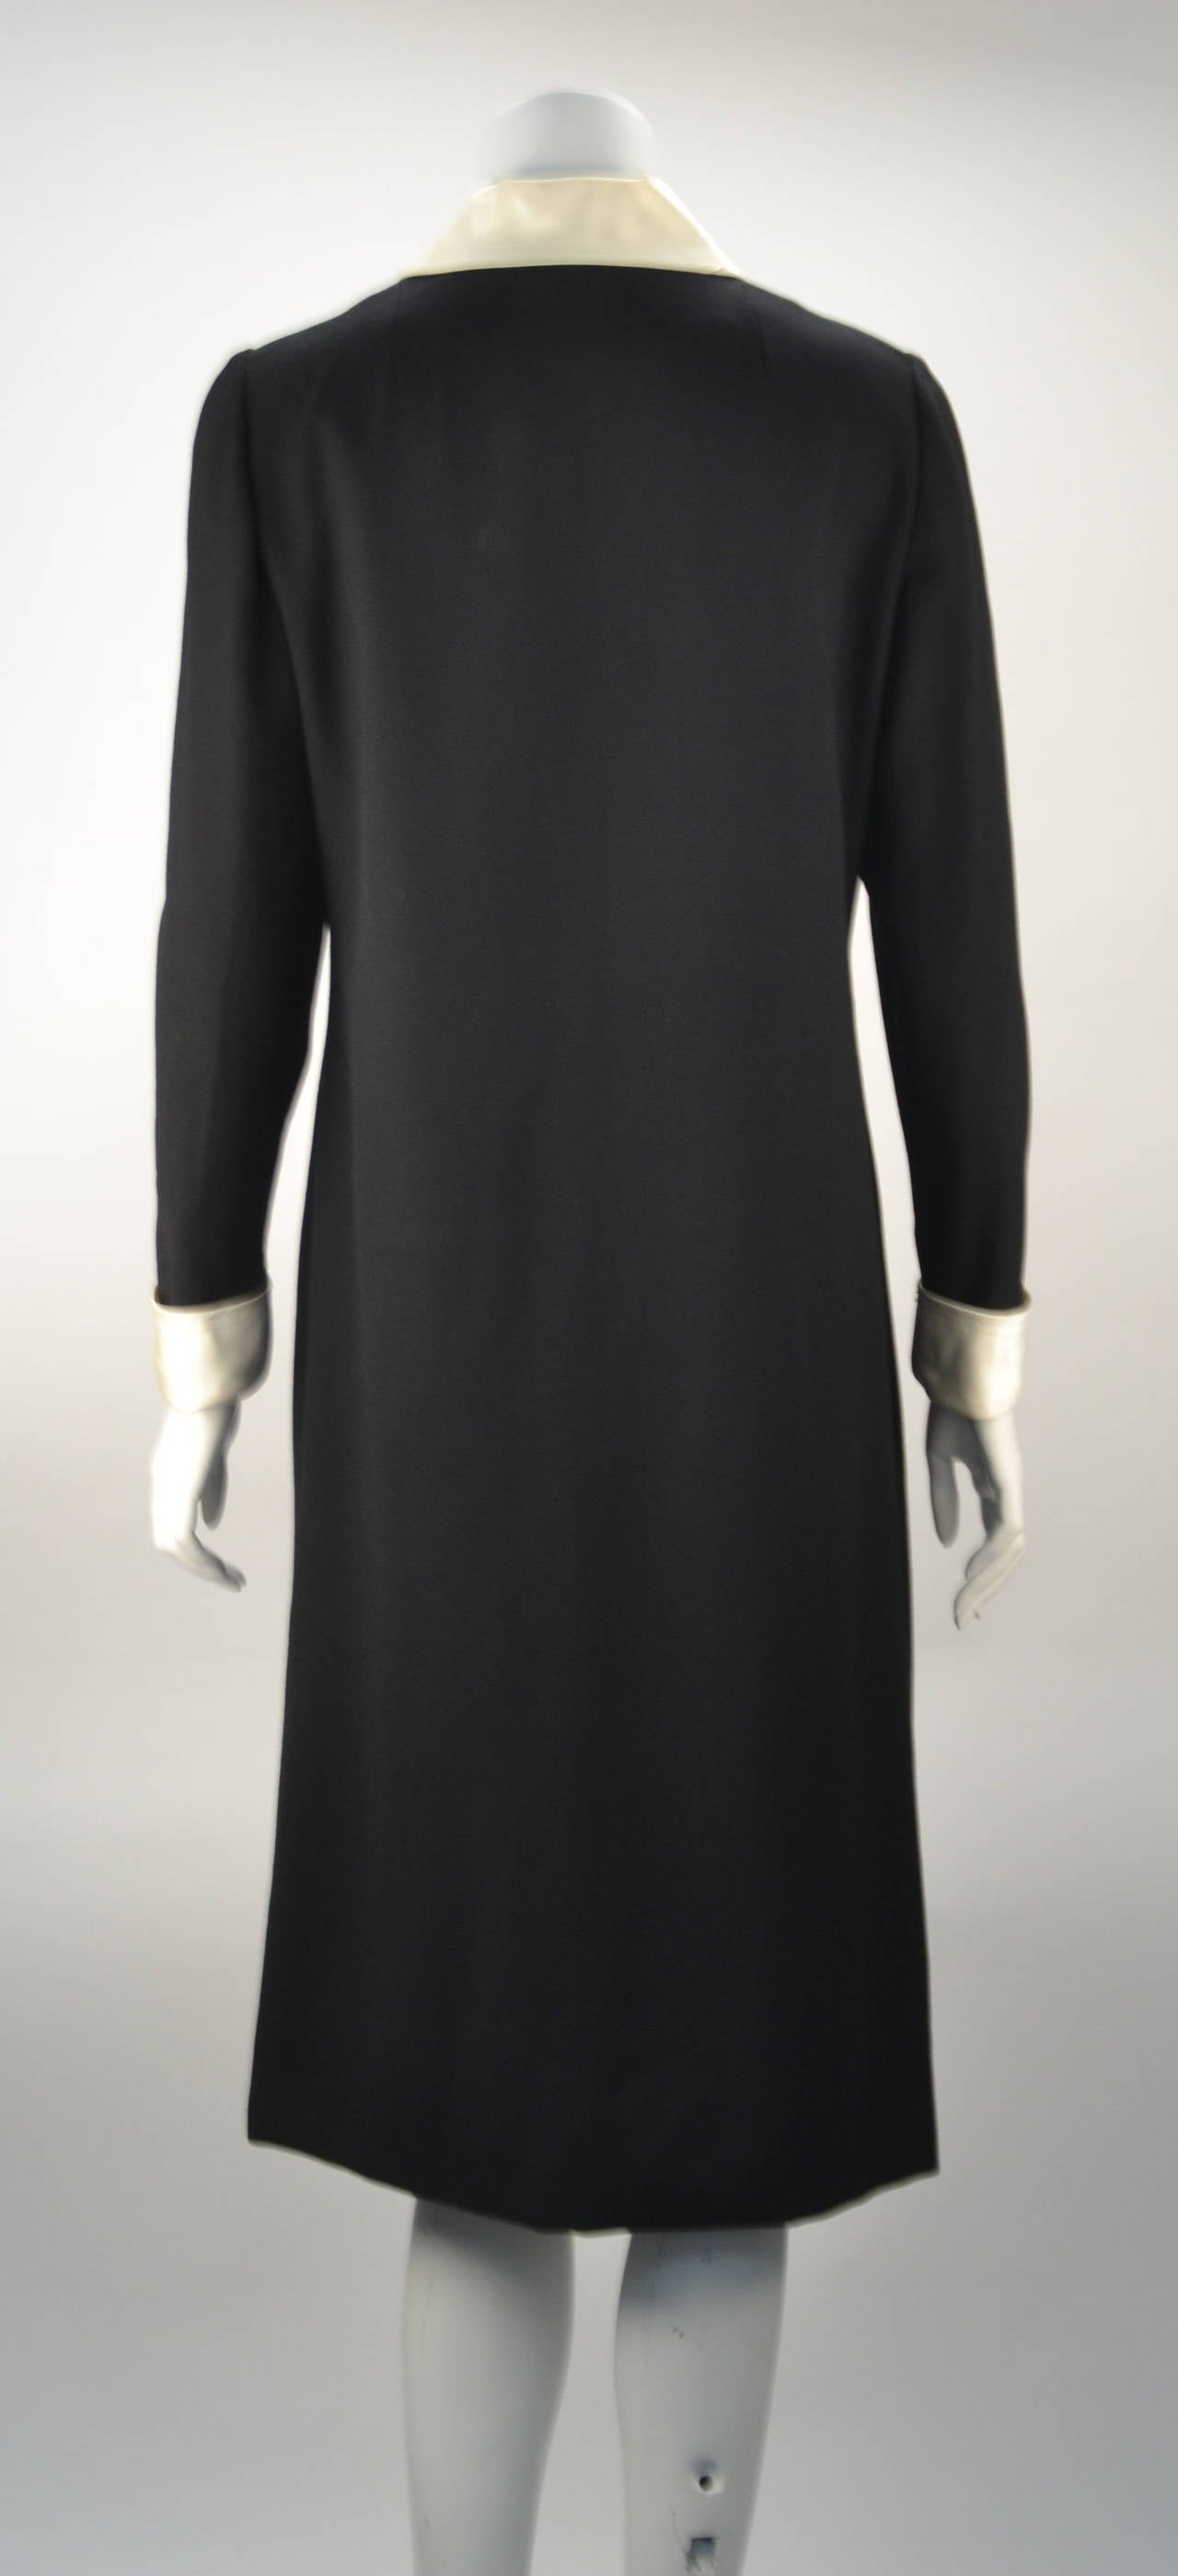 Coveted 1970's Oscar de La Renta dress! Exquisitely beautiful zipper front adds sexy to the classic satin collar and cuffs. This collectible de la Renta dress exemplifies why we love his work and why his dresses will and should live on forever.